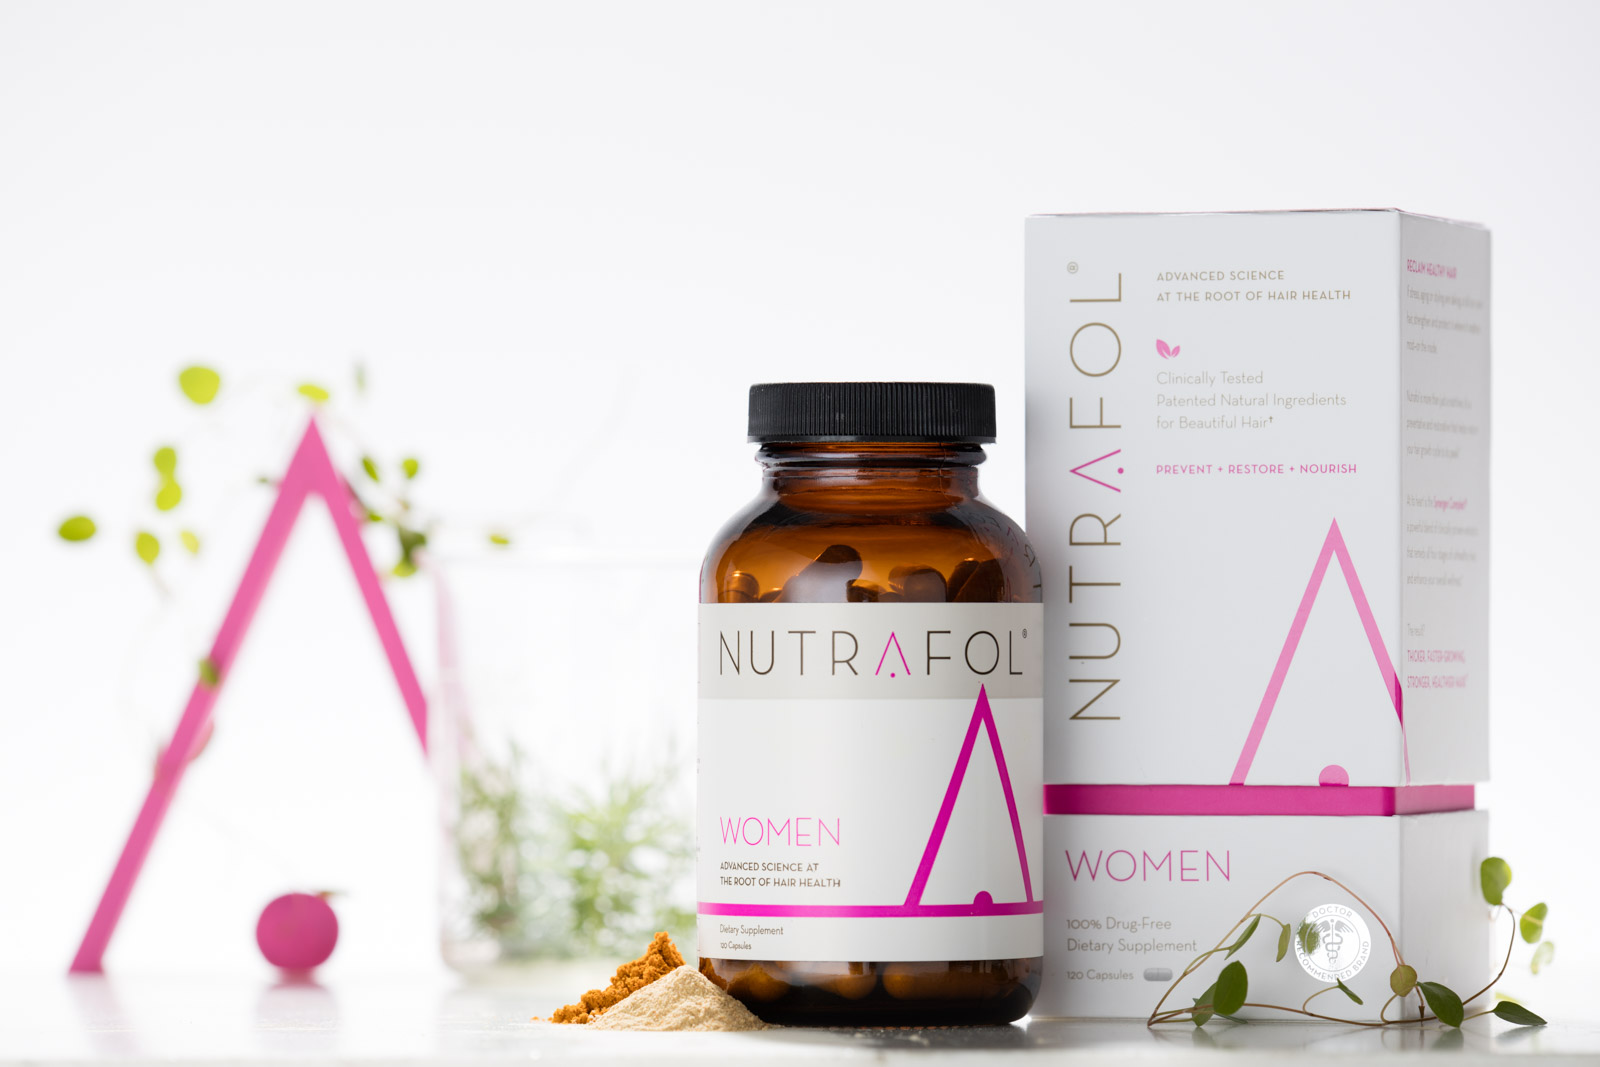 Nutrafol women's hair loss product photography by Reciprocity Studio photographers in Burlington, Vermont.